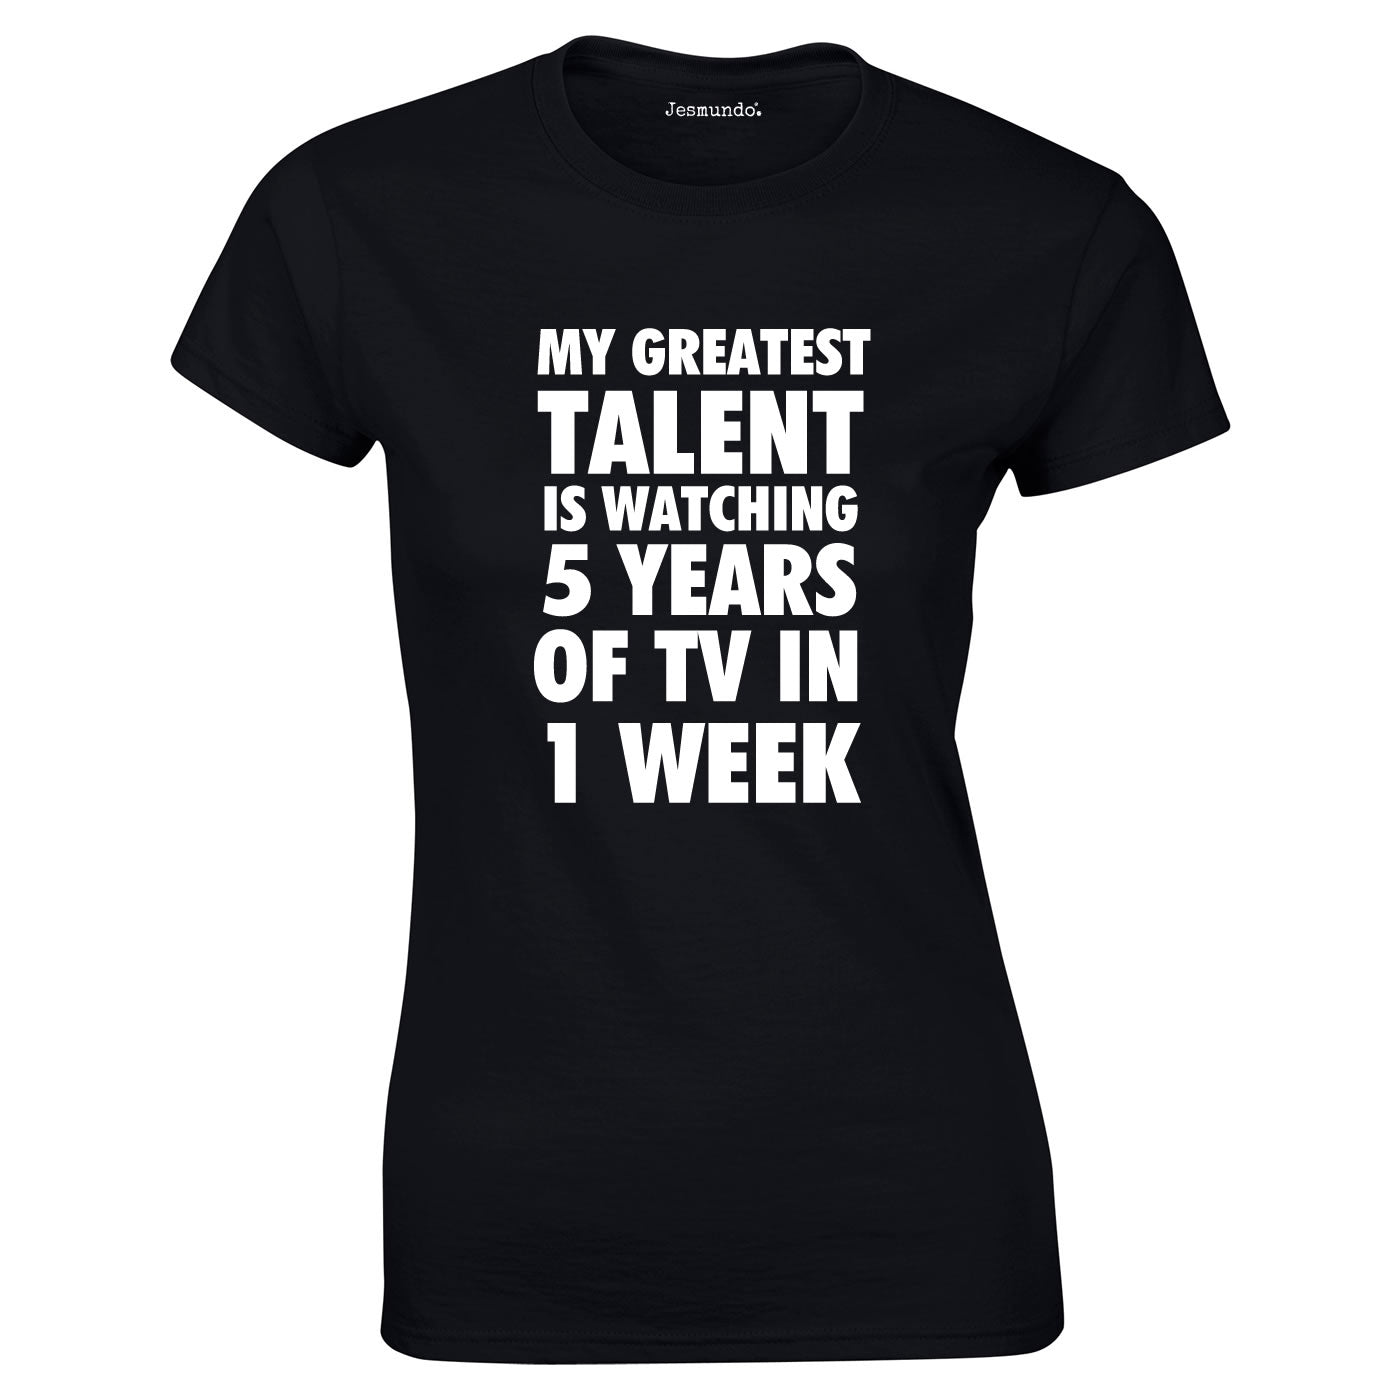 My Greatest Talent Is Watching 5 Years Worth Of TV T-Shirt